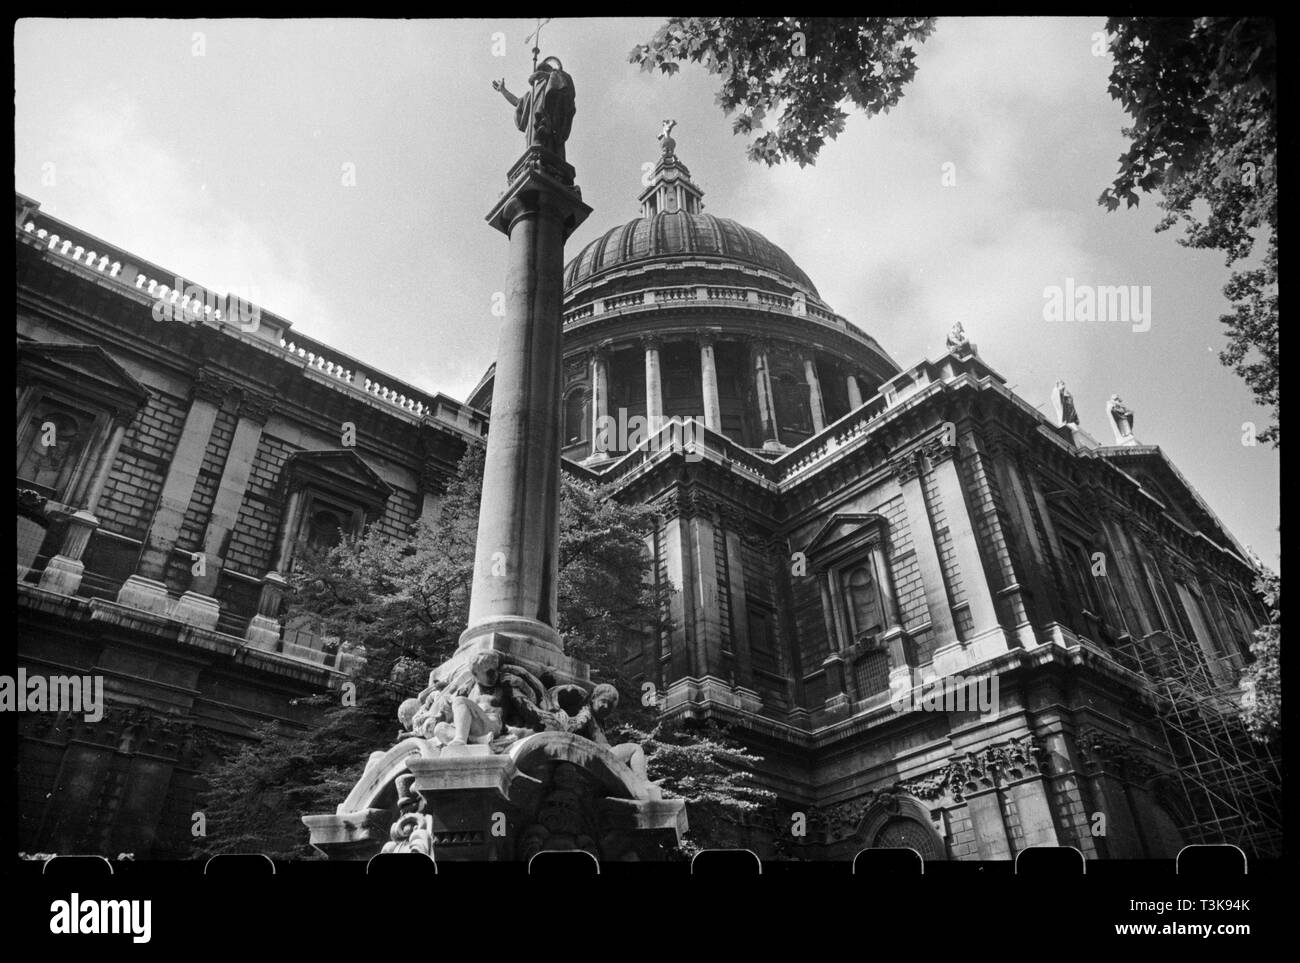 St Paul's Cathedral, City of London, c1955-c1980. Exterior view of St Paul's Cathedral, showing a view of the dome roof, seen from the north-east with St Paul's Cross in the foreground. St Paul's Cathedral was built in the classical style with mostly Portland stone between 1675-1710 by Sir Christopher Wren to replace the previous medieval cathedral that had burnt in the Great Fire of London. The image shows the north elevation, with transept on the right, topped with a wide pediment. Over the pediment are a number of statues, four of which can be seen from the ground. The central domed roof, p - Stock Image